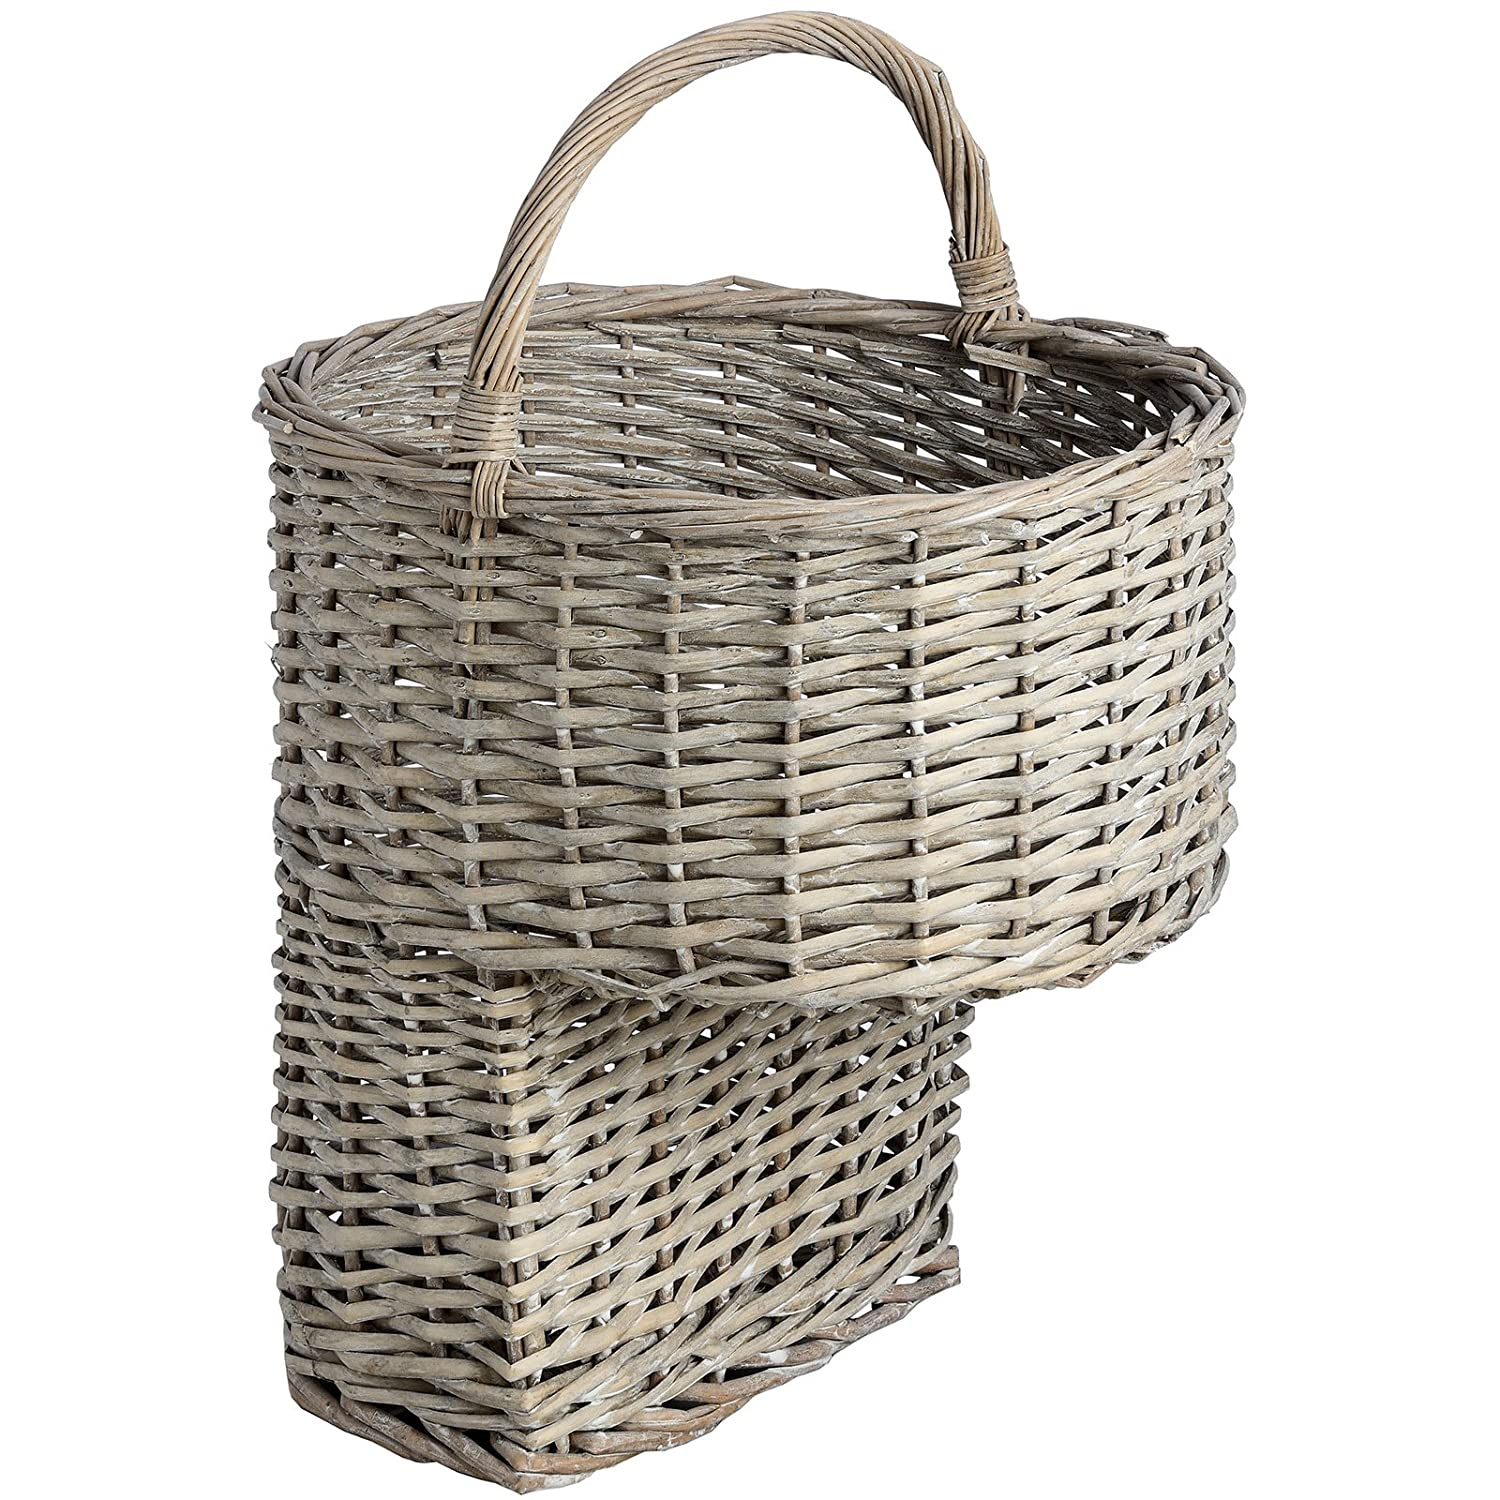 Interior Flair Sturdy Natural Grey Wicker Stair Basket Storage Basket with Handle